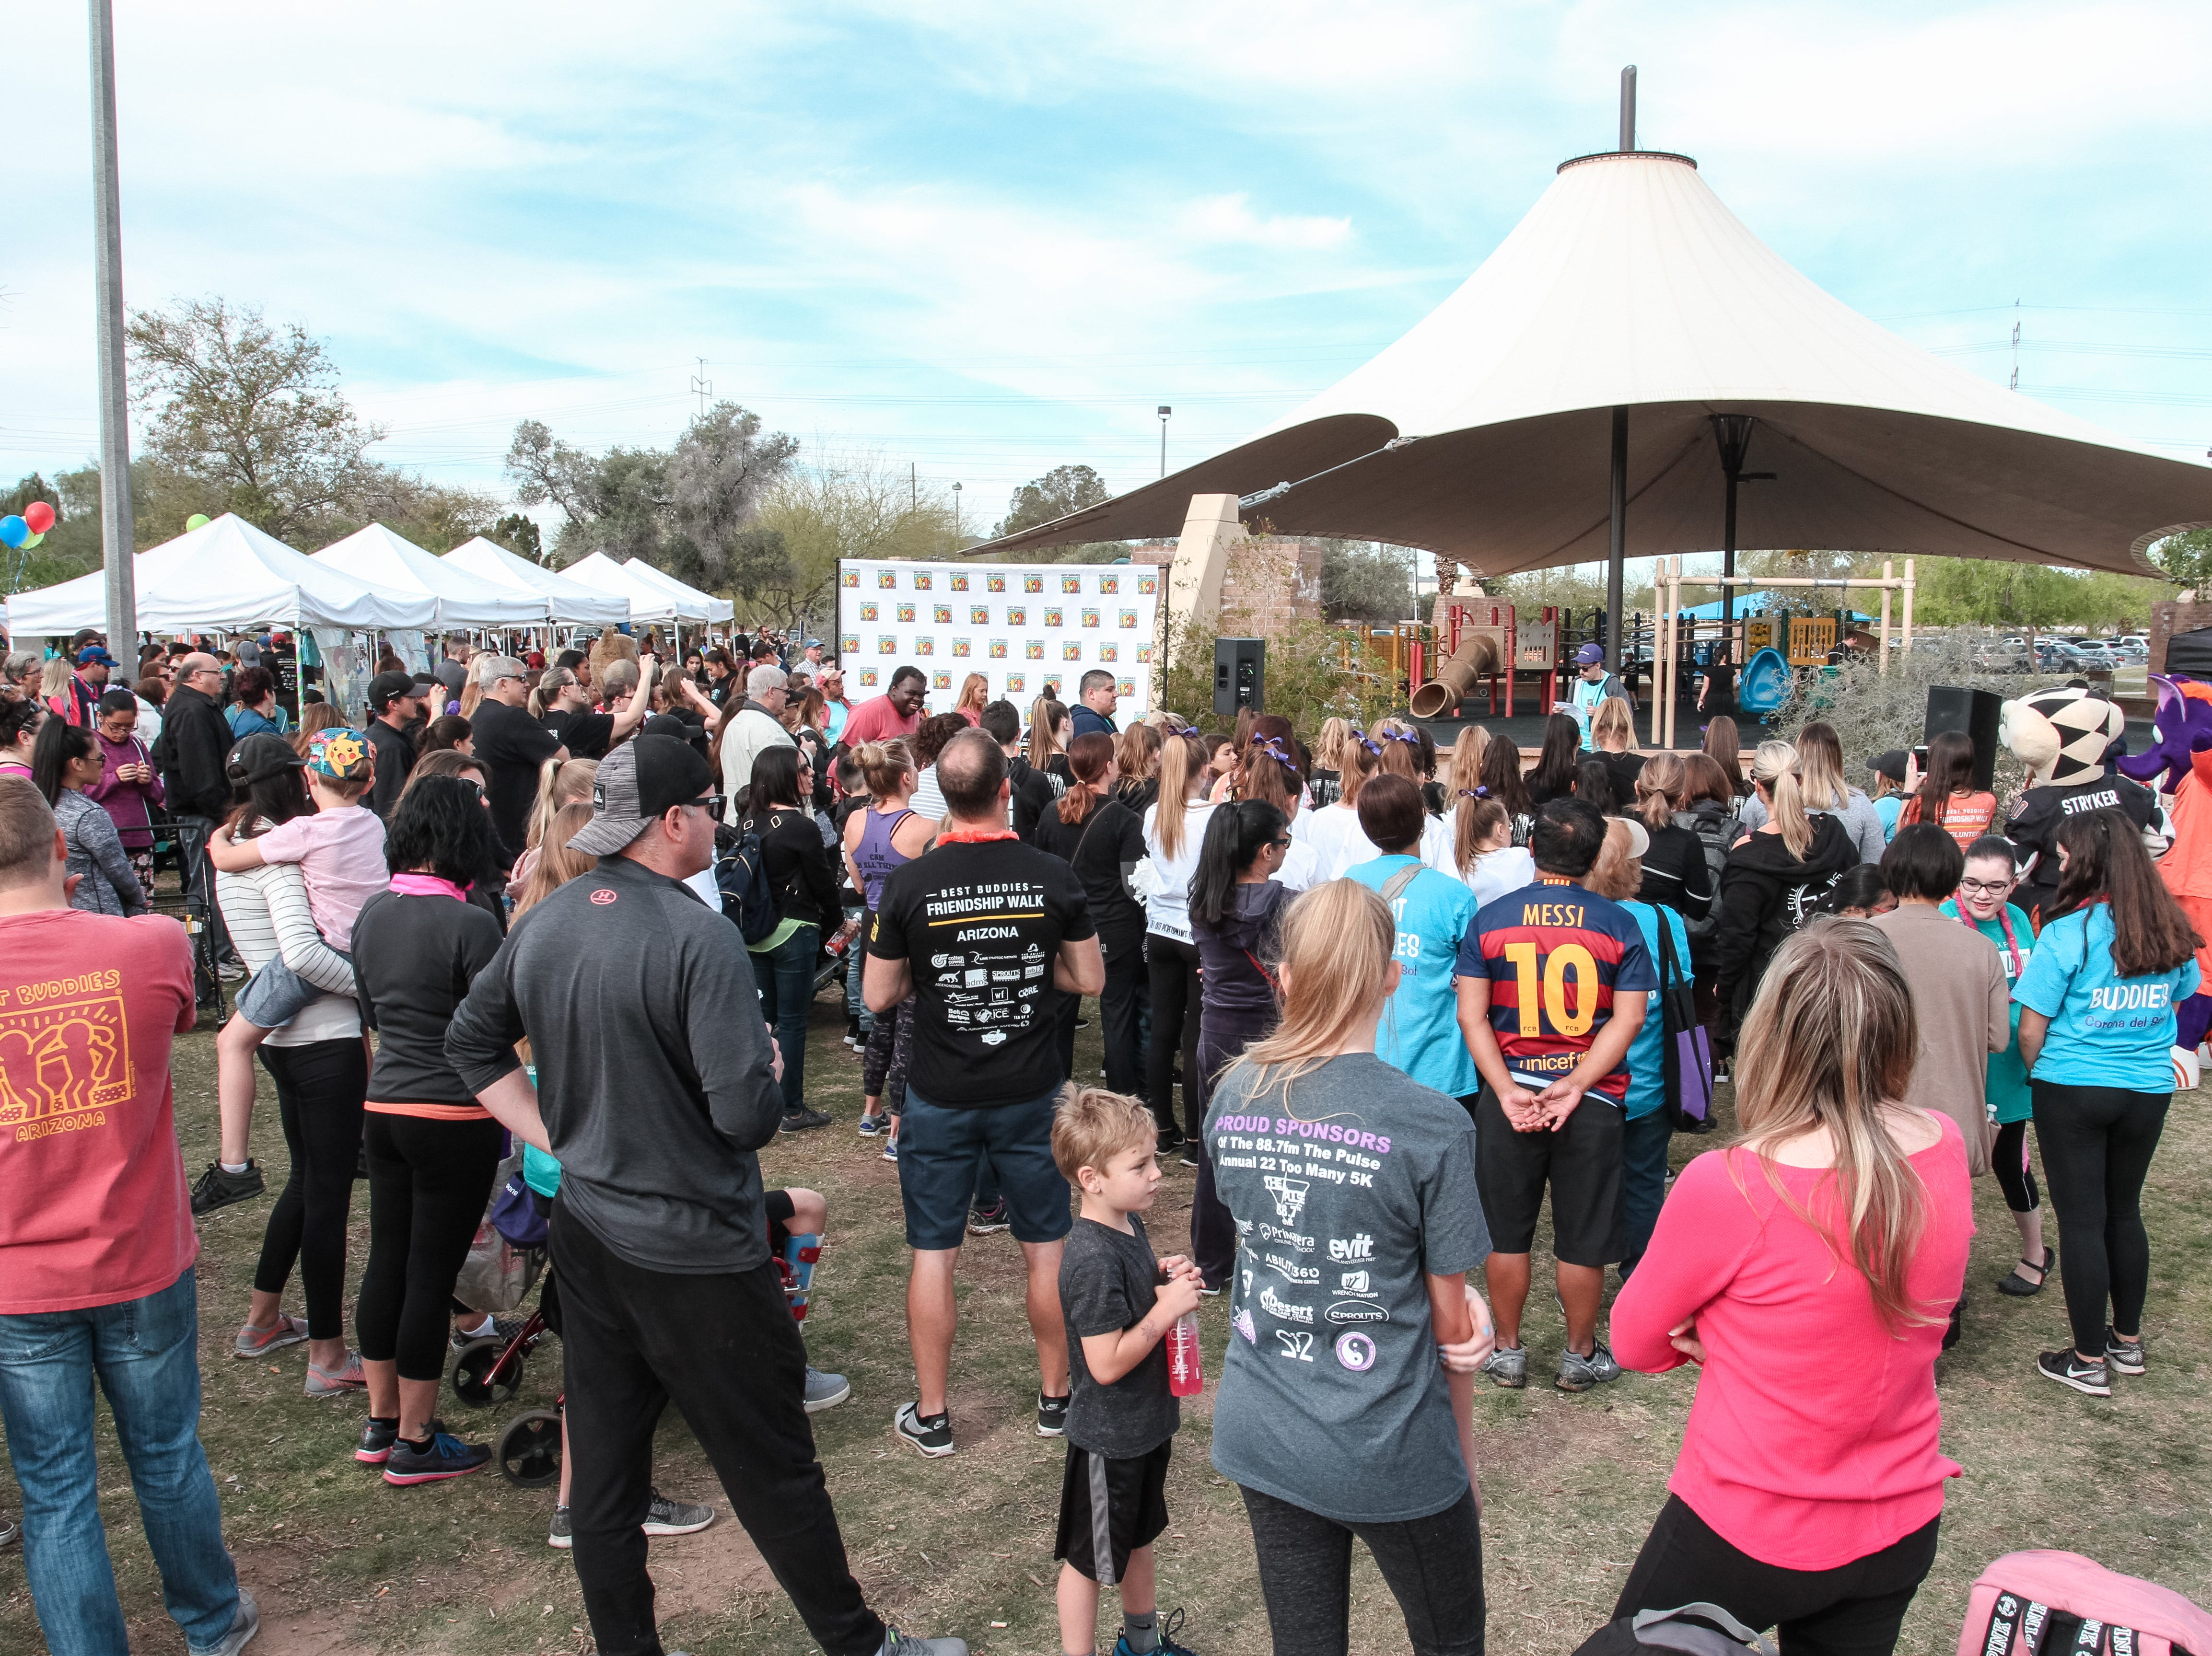 Participants wait to begin walking at The Best Buddies Friendship Walk at Kiwanis Park in Tempe on March 23, 2019.